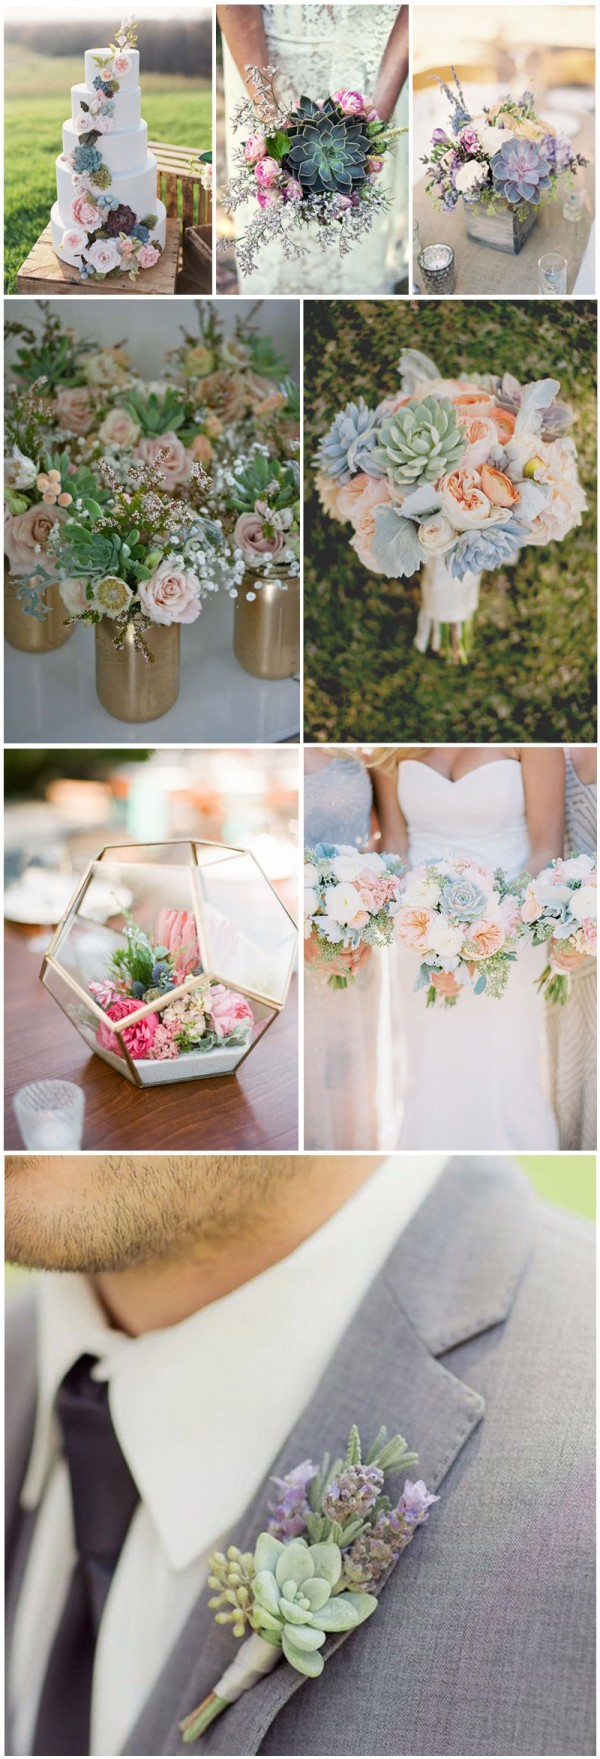 Romantic-succulent-wedding-decor-and-bouquet-ideas